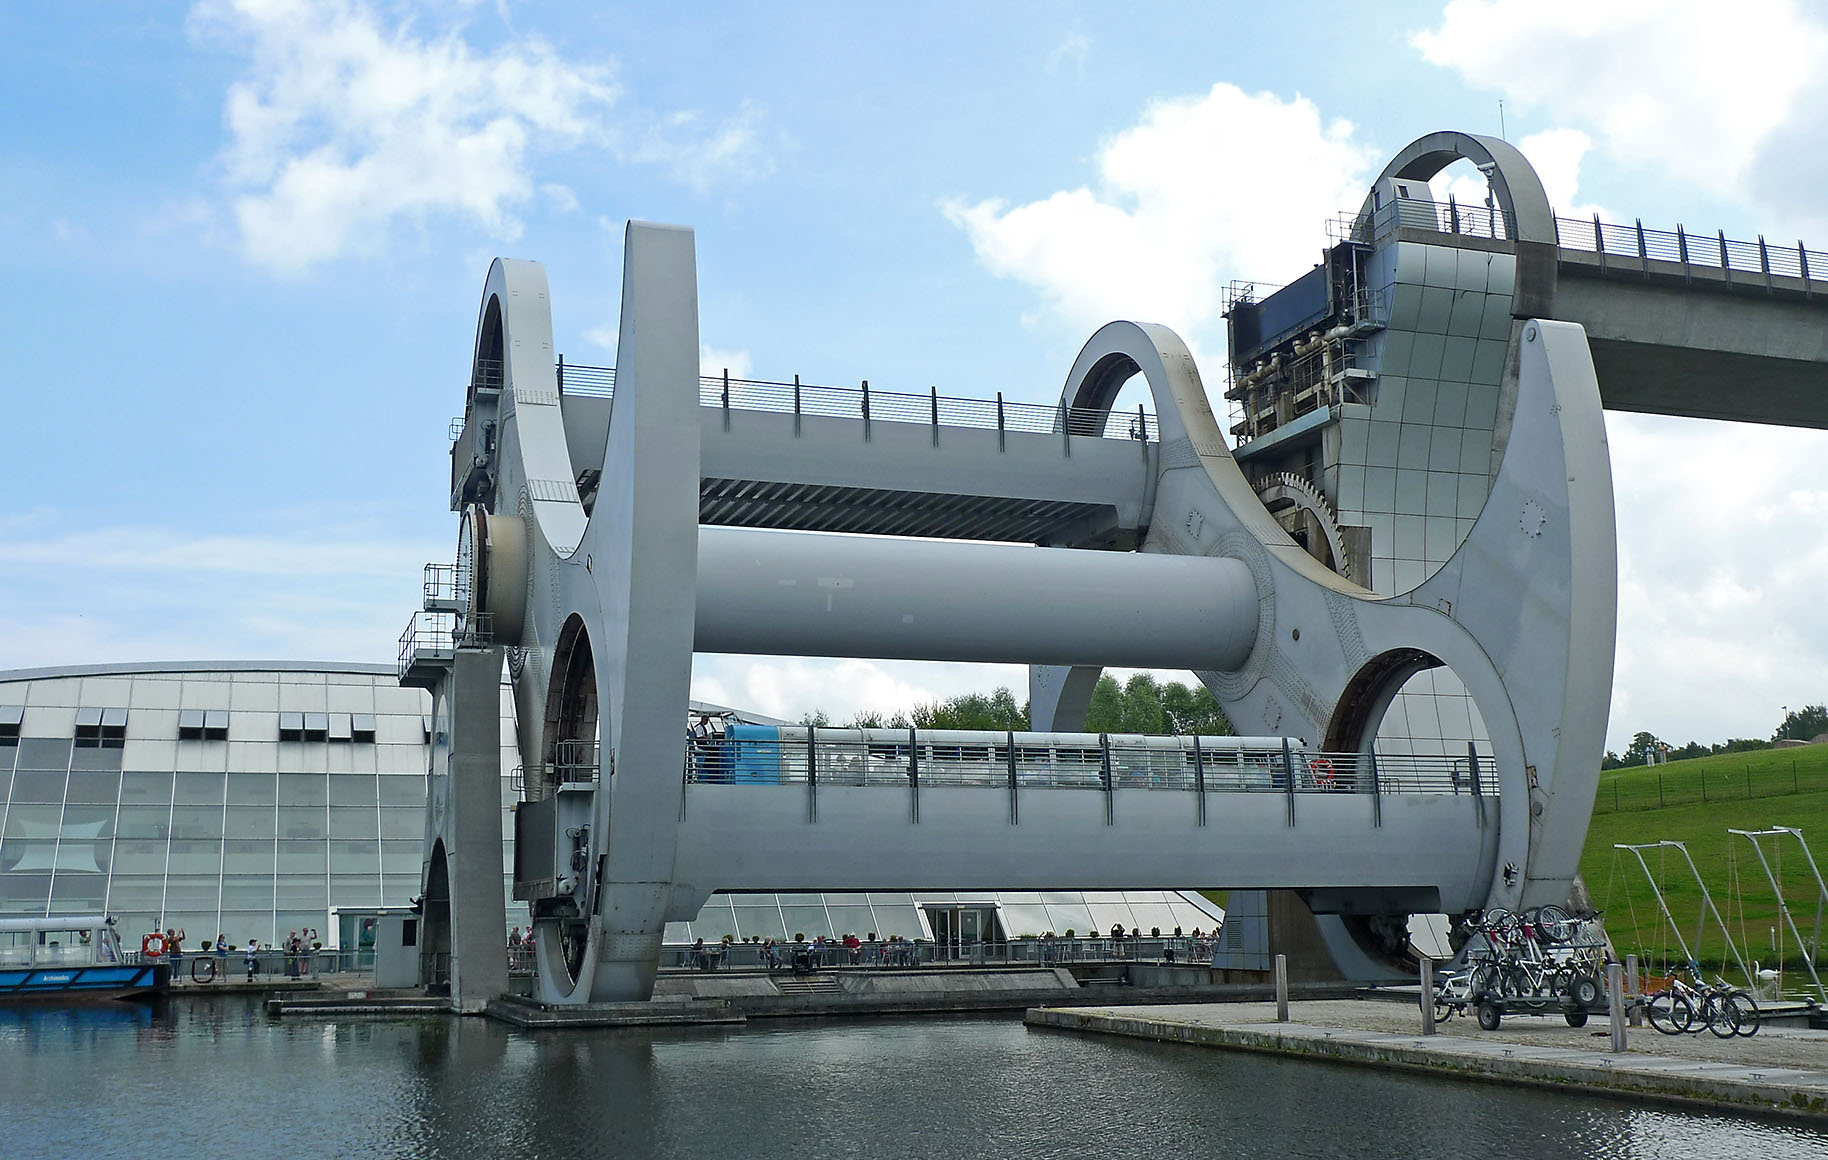 Falkirk wheel which lifts boats 24 m 79 feet from the union canal to